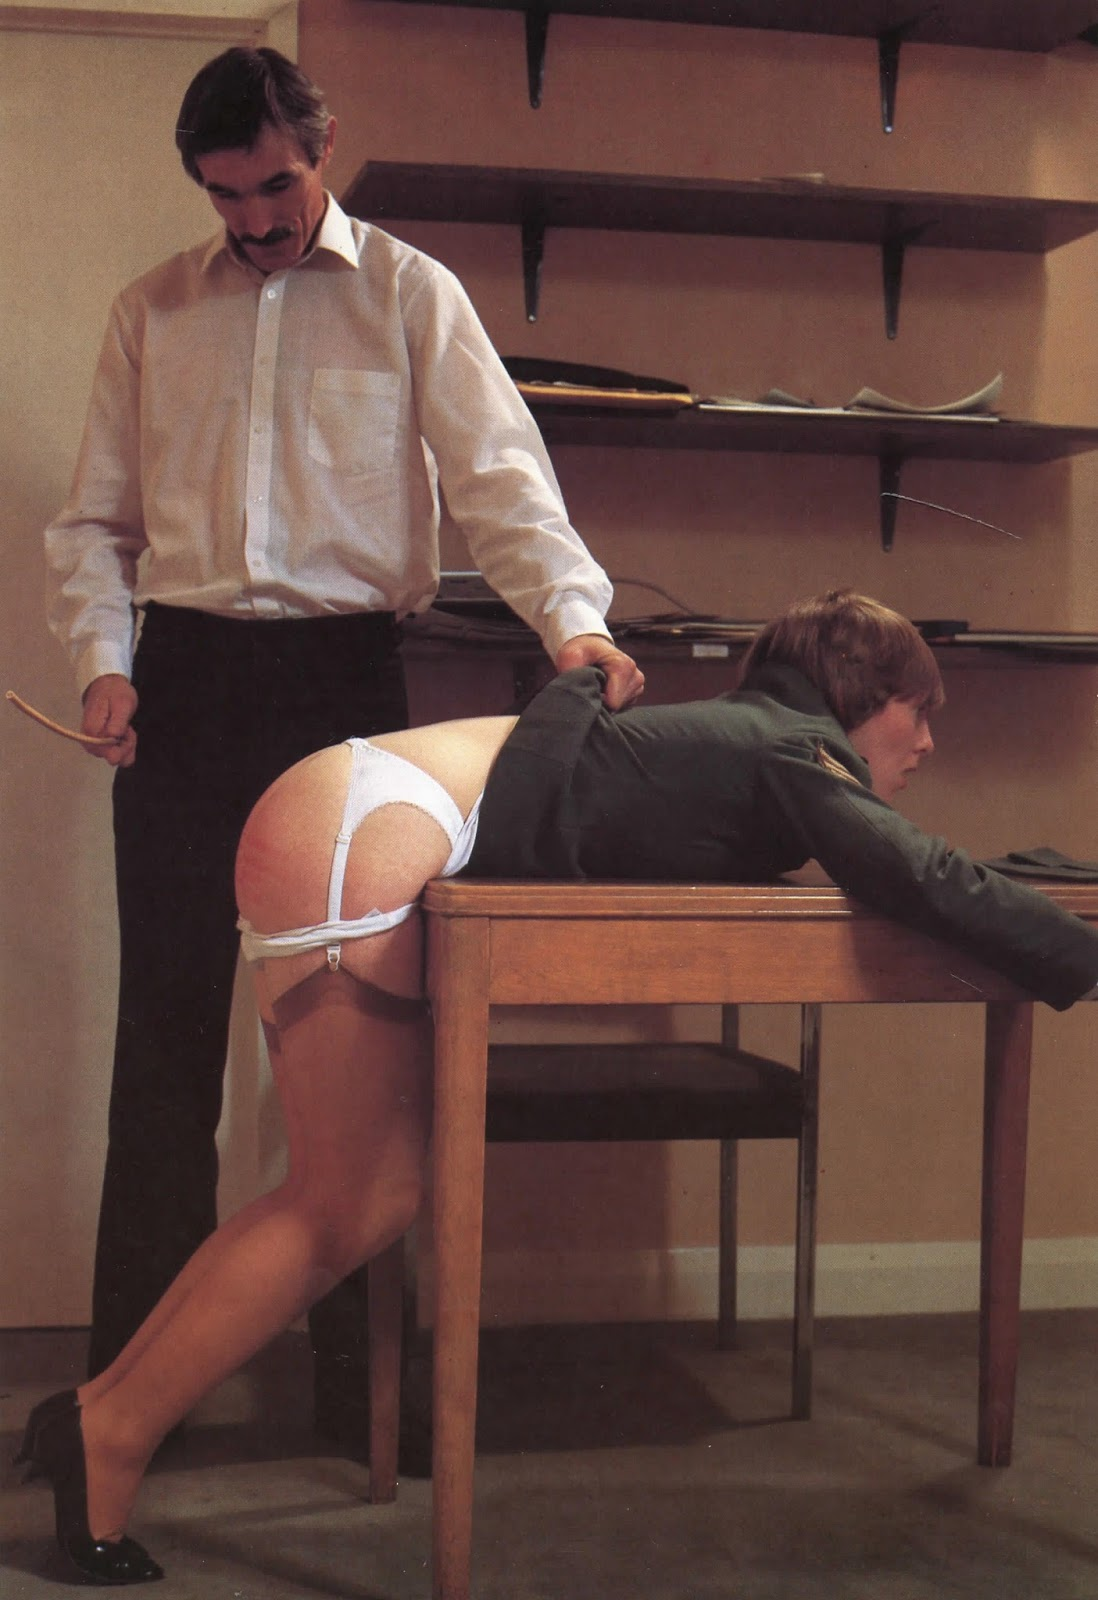 Men Being Spanked